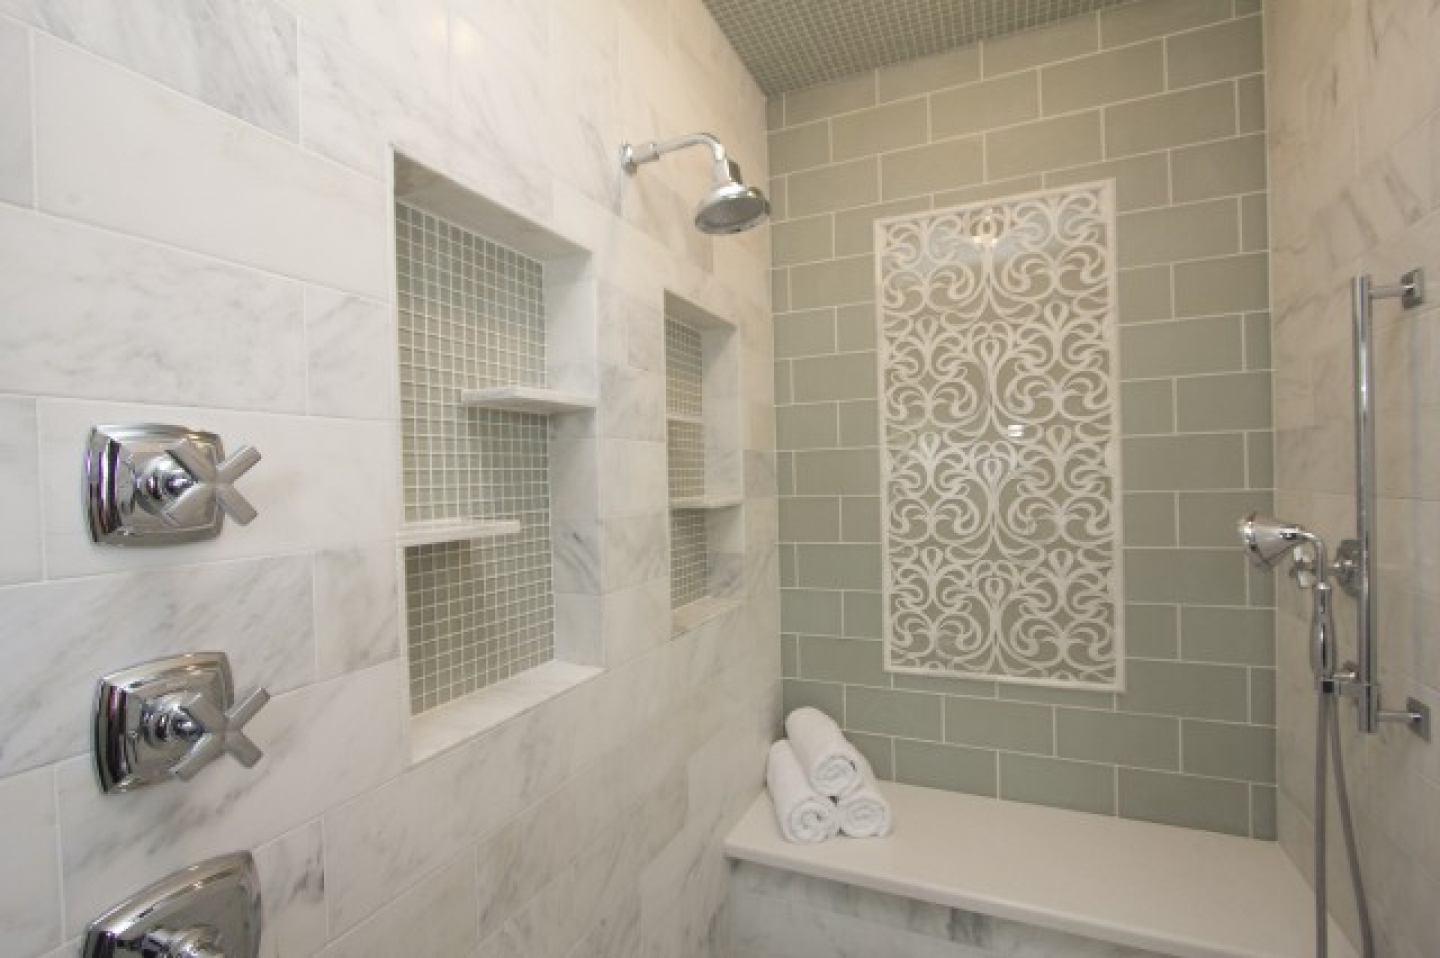 8 12 18 19 23 - Tiled Bathrooms Designs